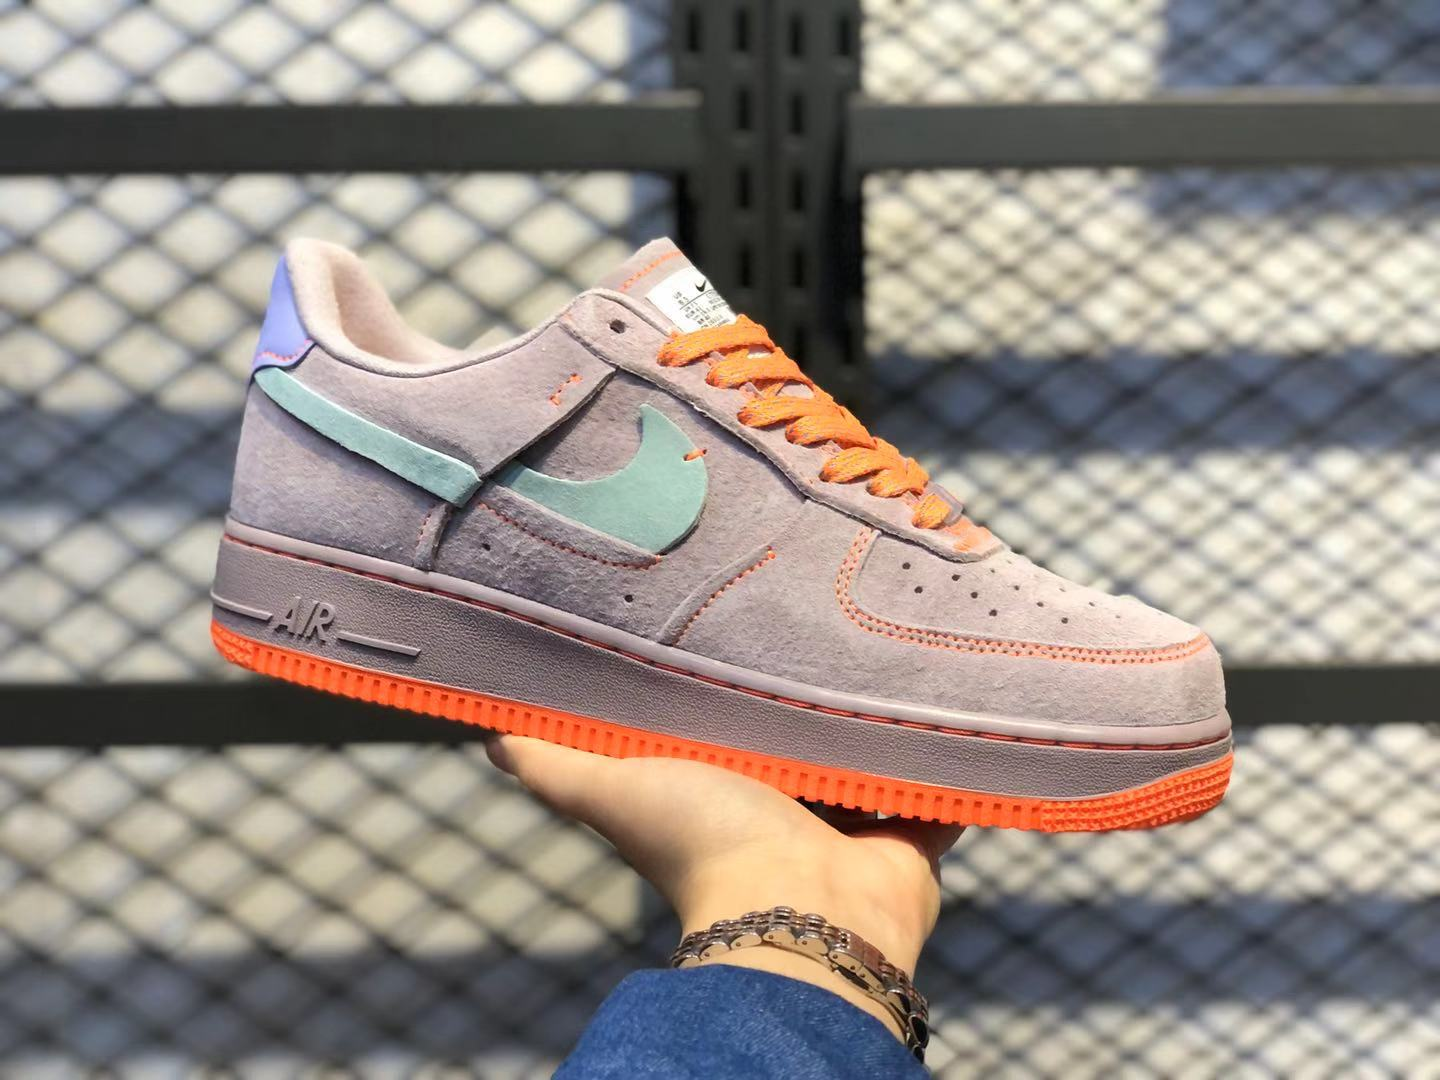 Nike WMNS Air Force 1 Pink/Orange-Grey Casual Running Shoes For Buy